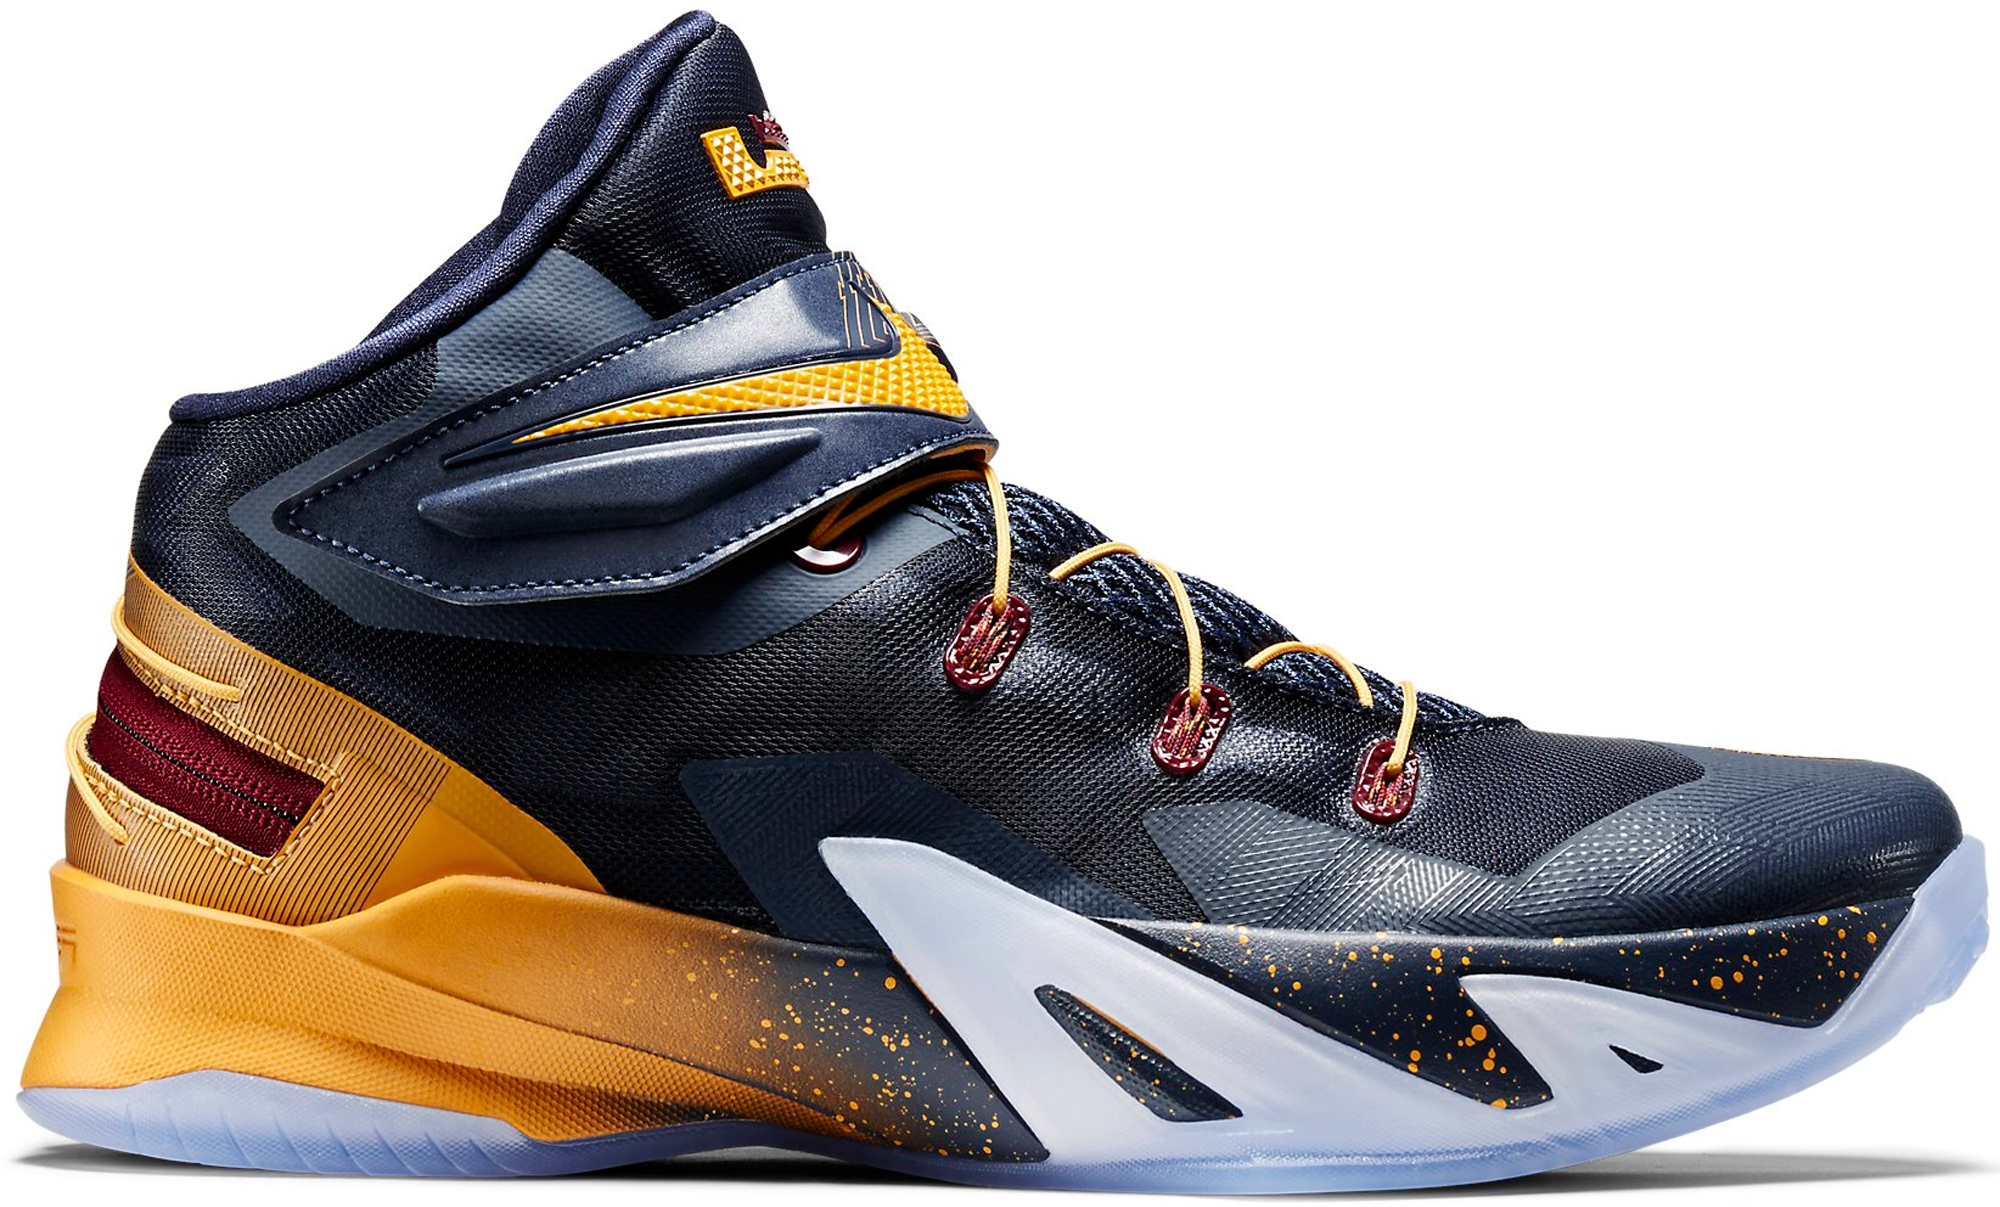 c5f3c6413783 Lebron Soldier 8 Flyease For Sale